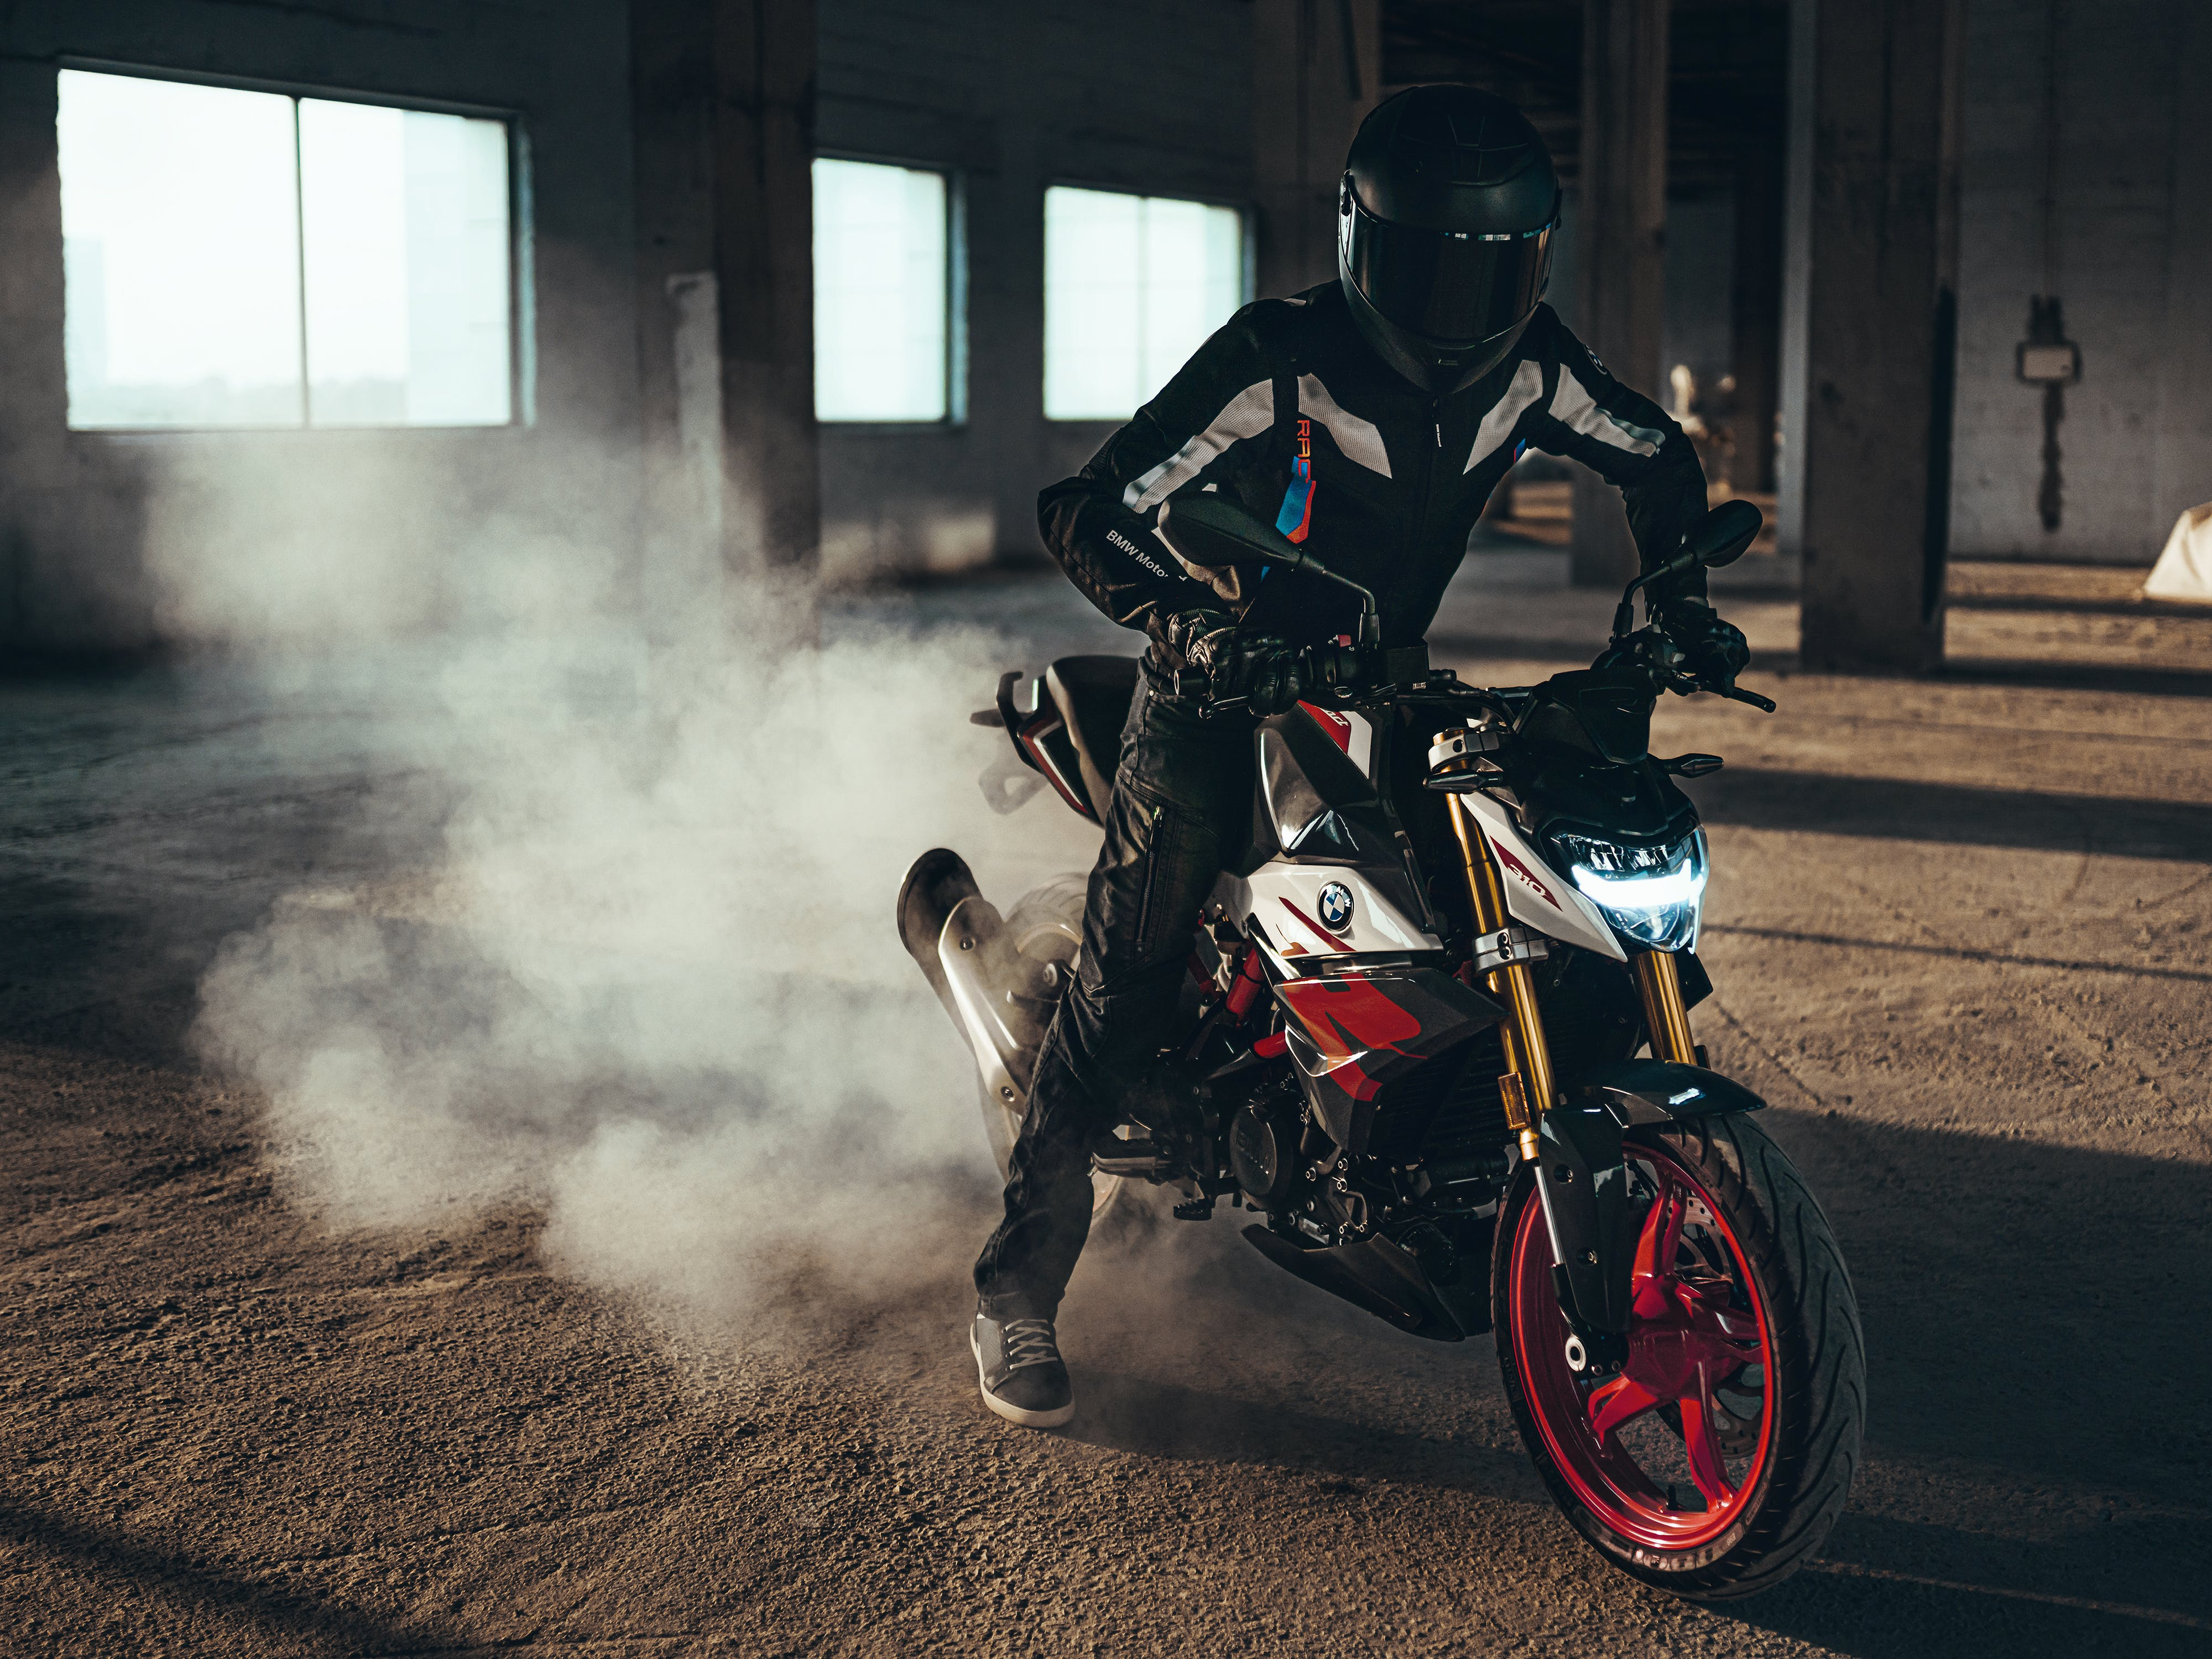 BMW G 310 R in Cosmic Black colour being tested